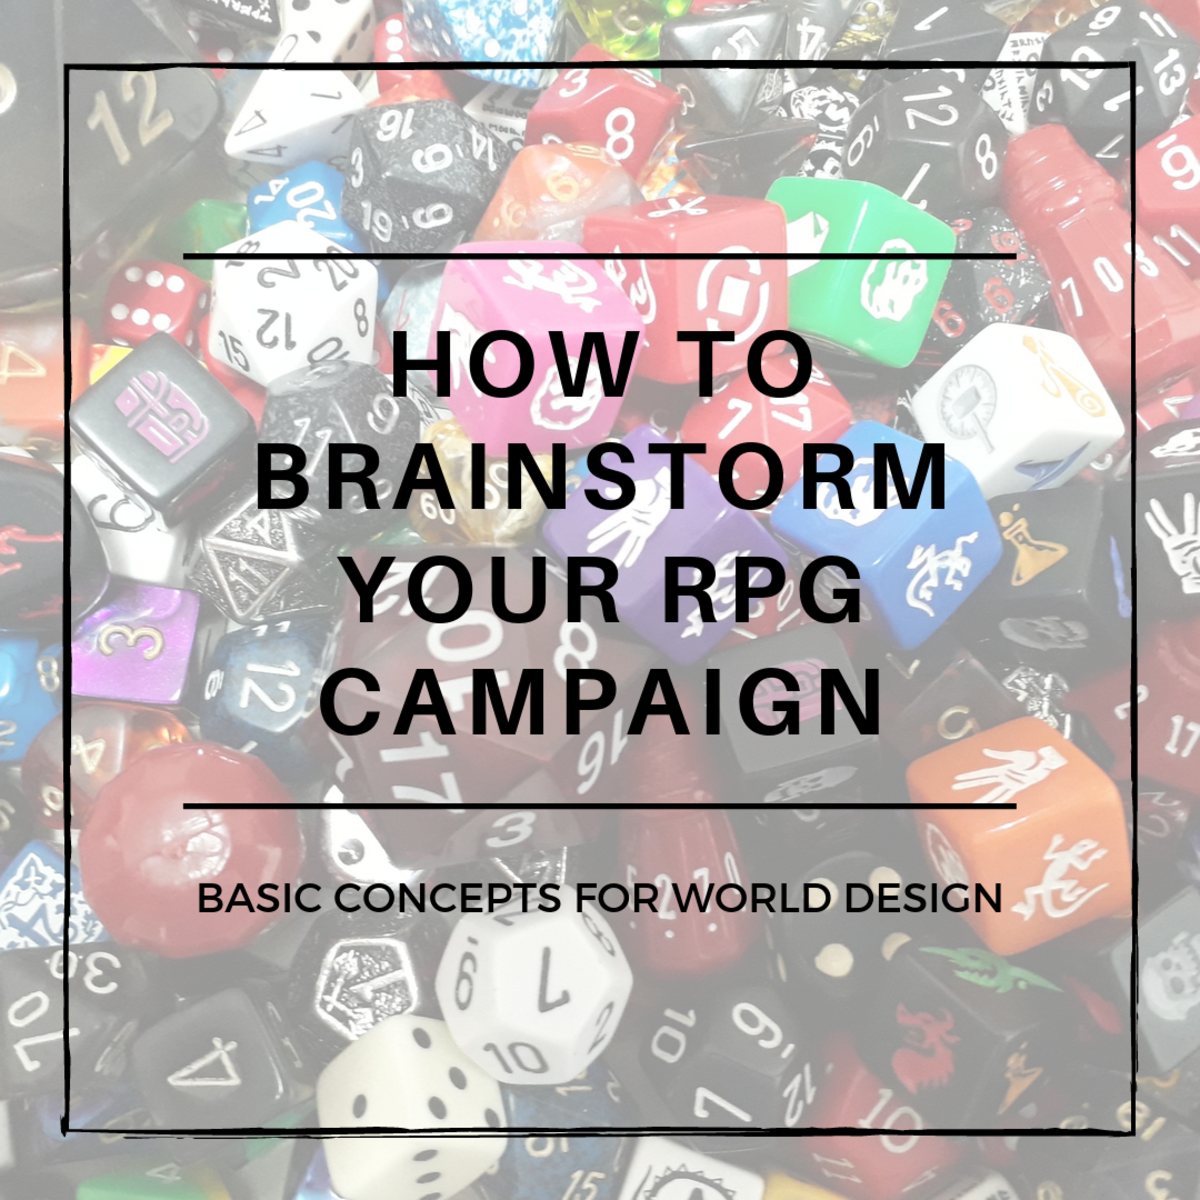 This guide will help you brainstorm the main concepts you'll be working with when crafting your RPG campaign.